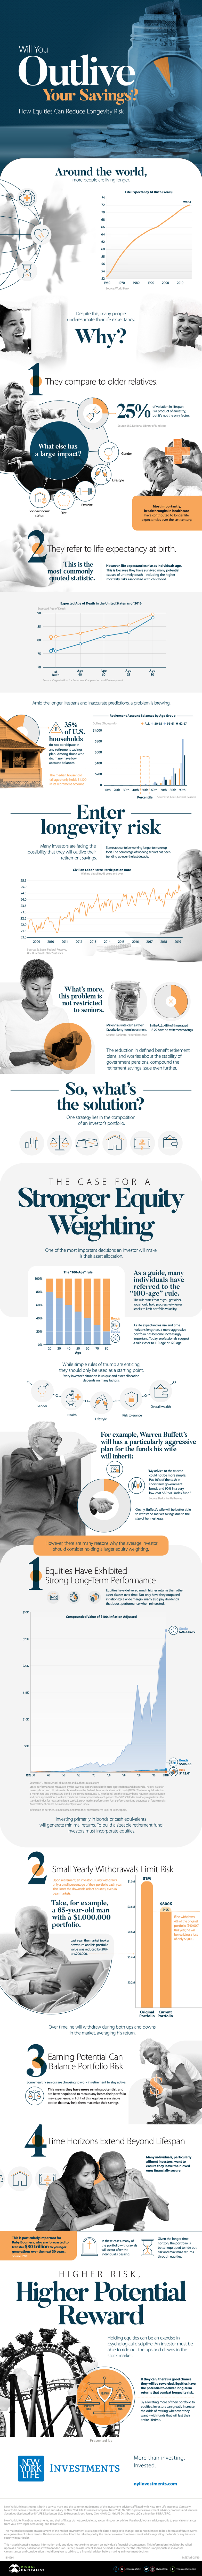 How Equities Can Reduce Longevity Risk